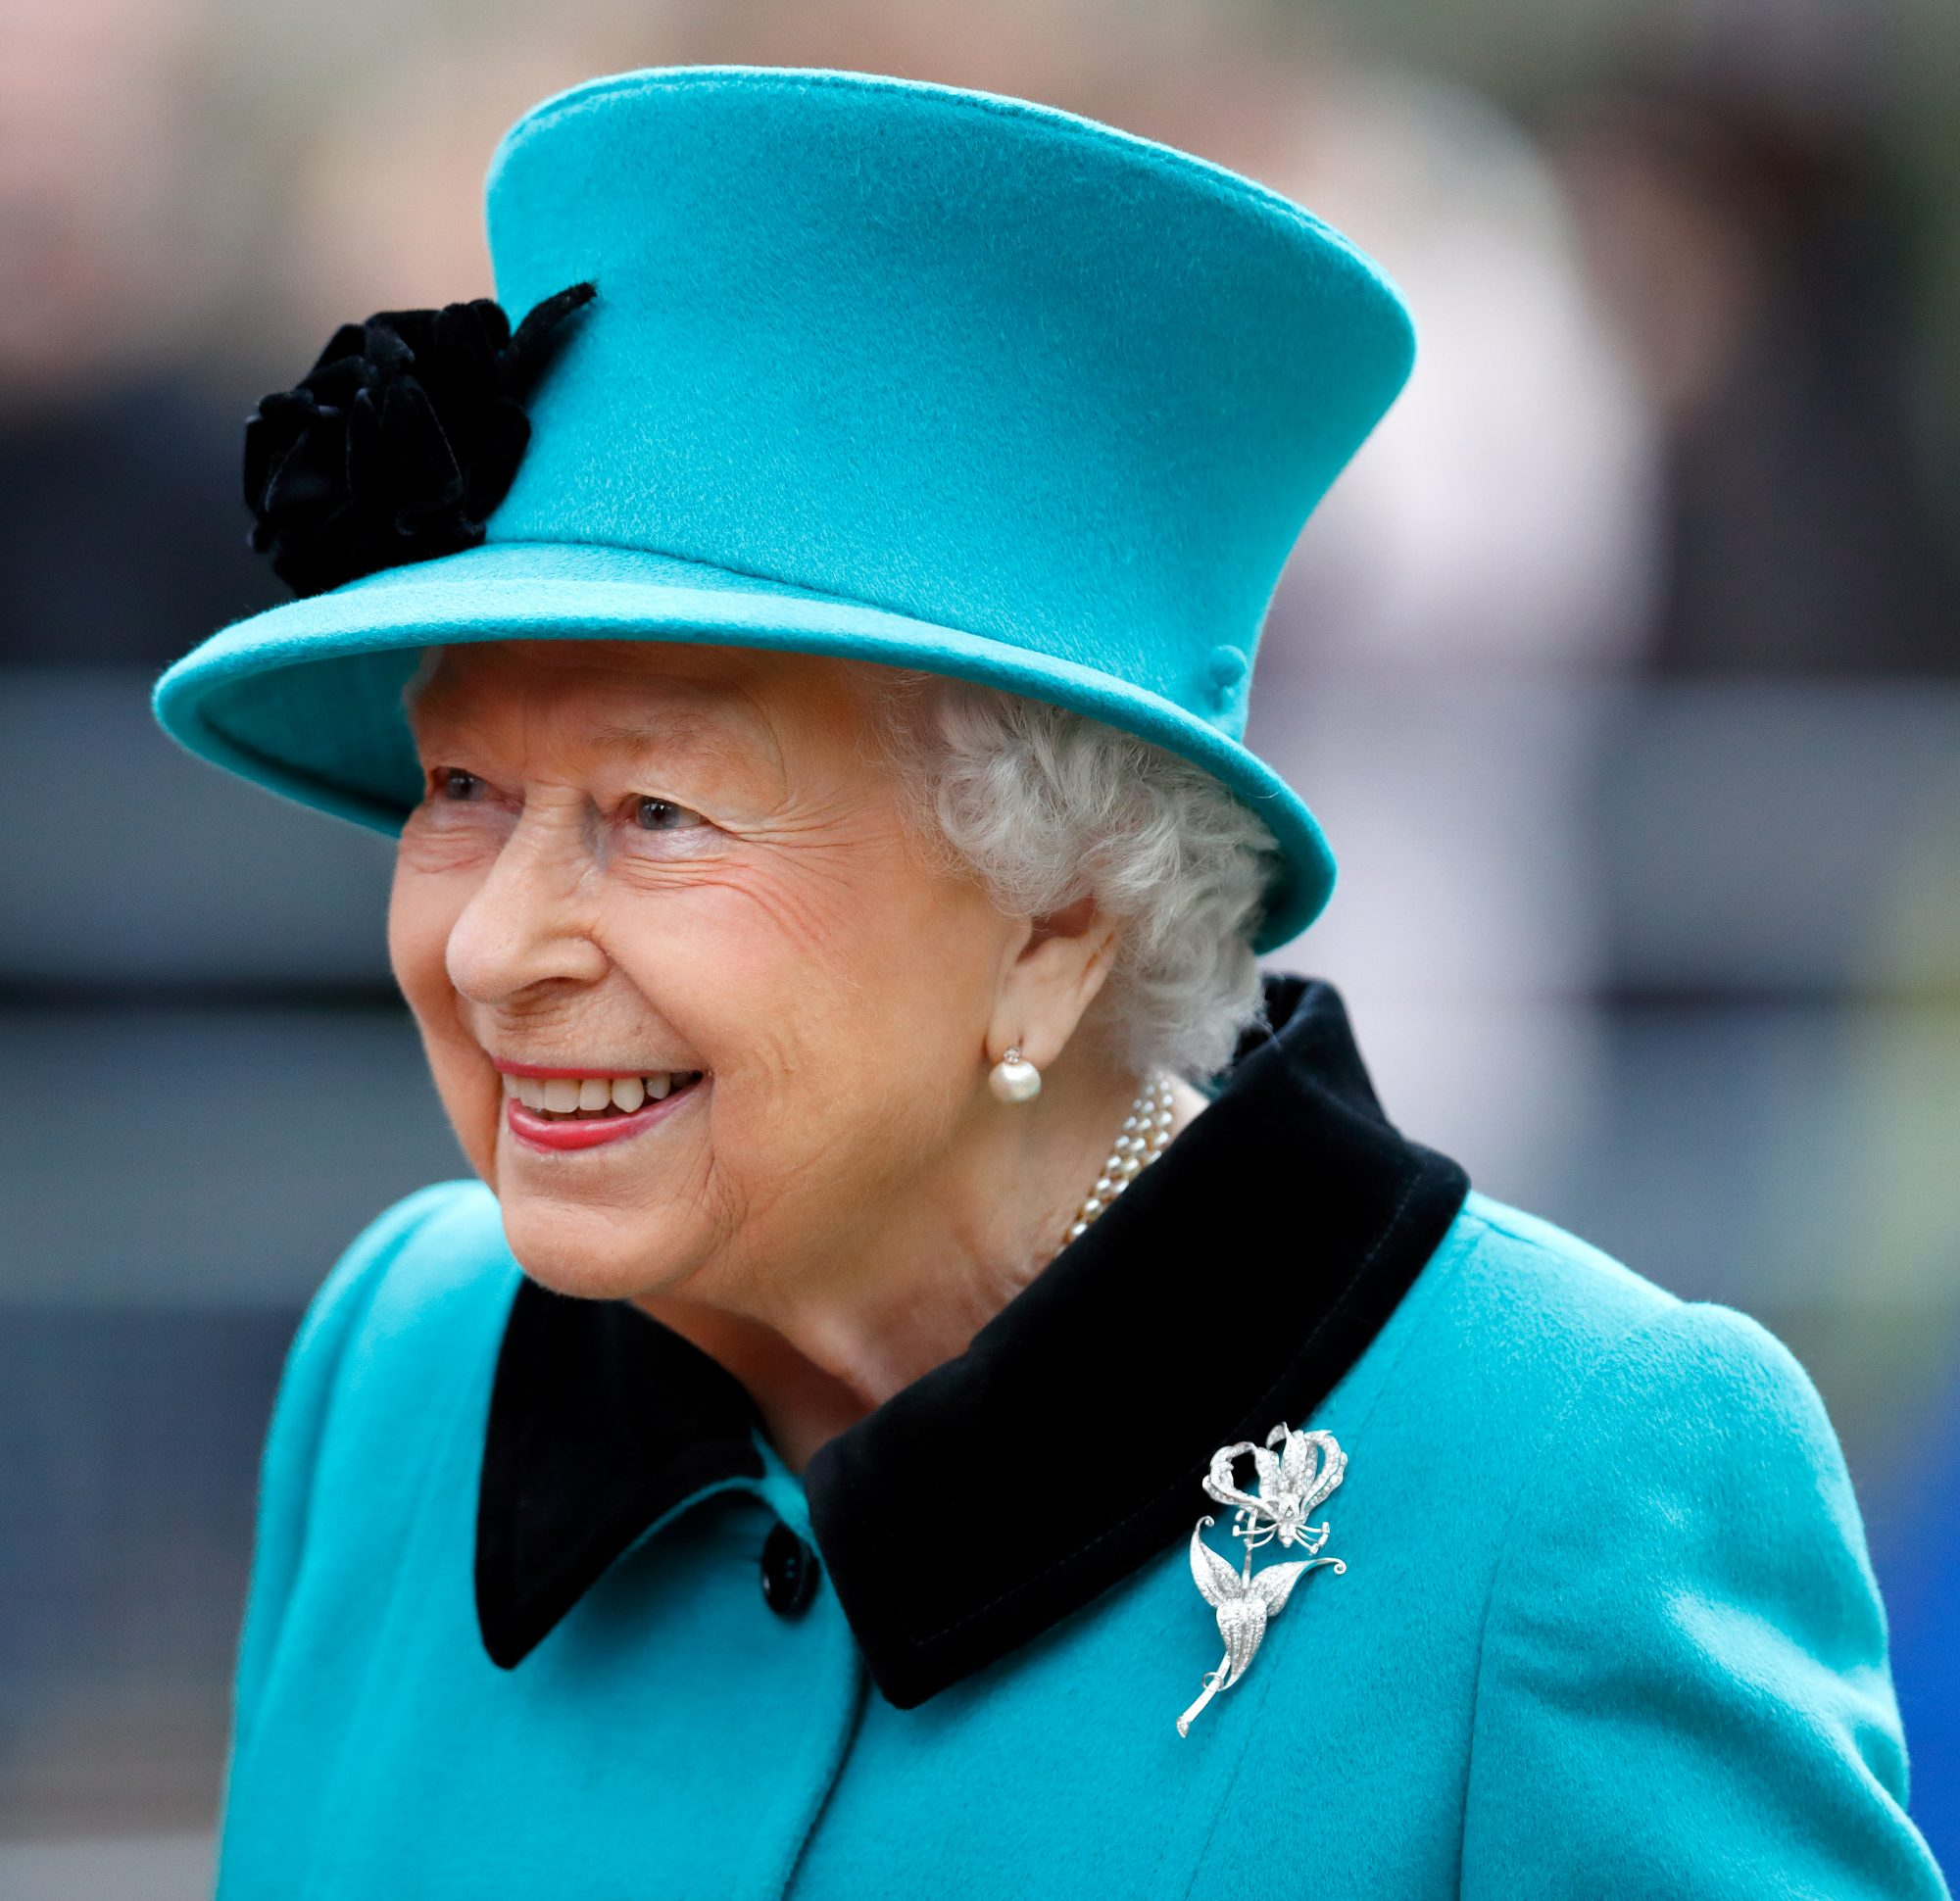 Queen Elizabeth Bright Blue Suit and Hat